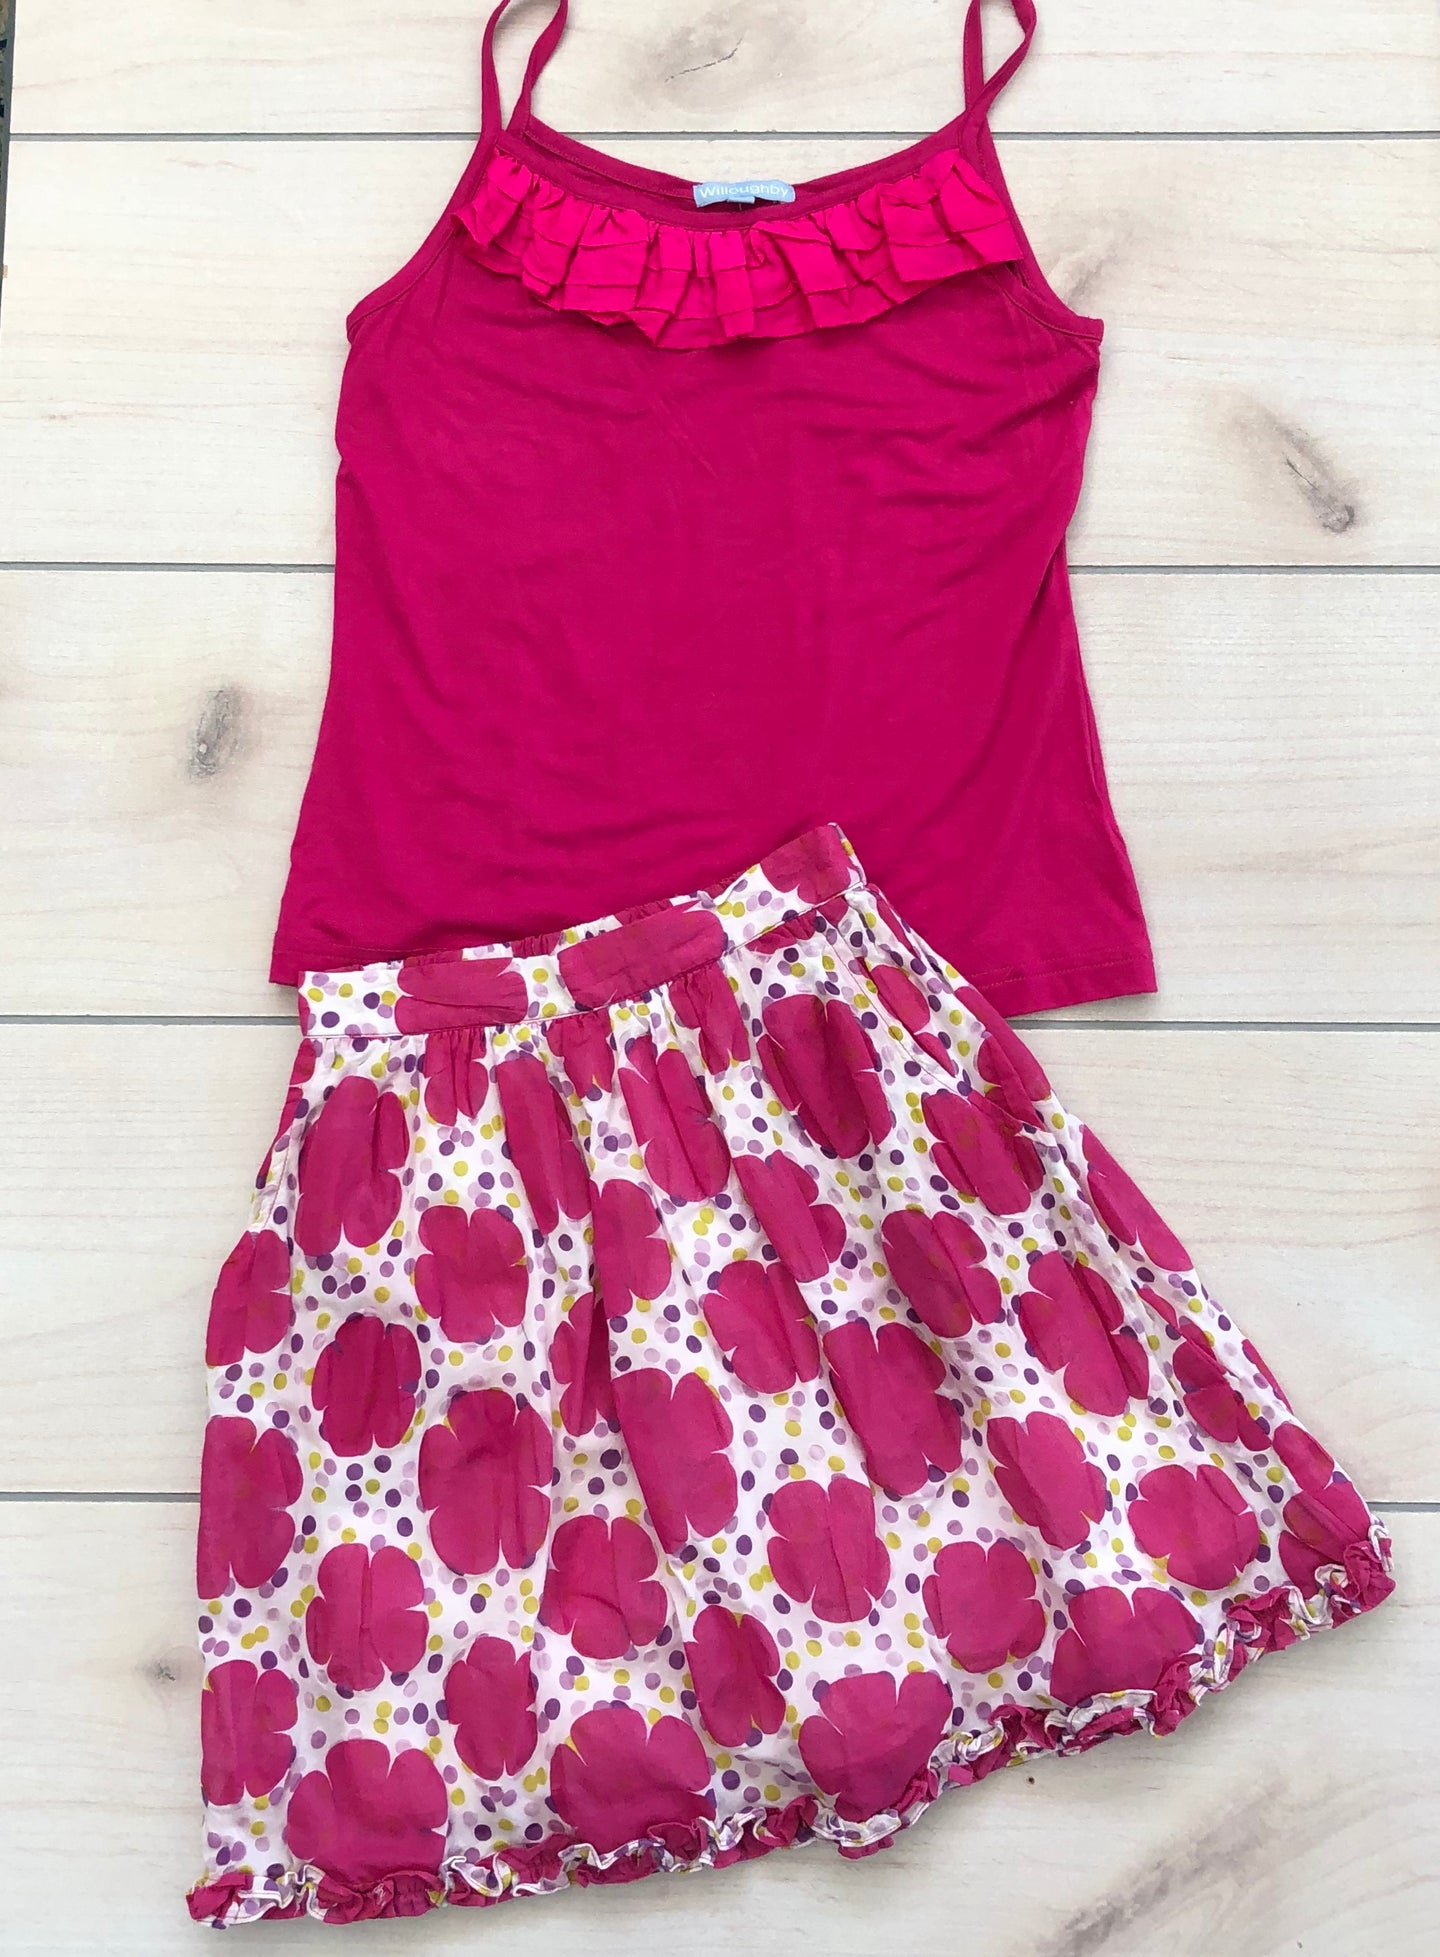 Willoughby Skirt And Top Size 7